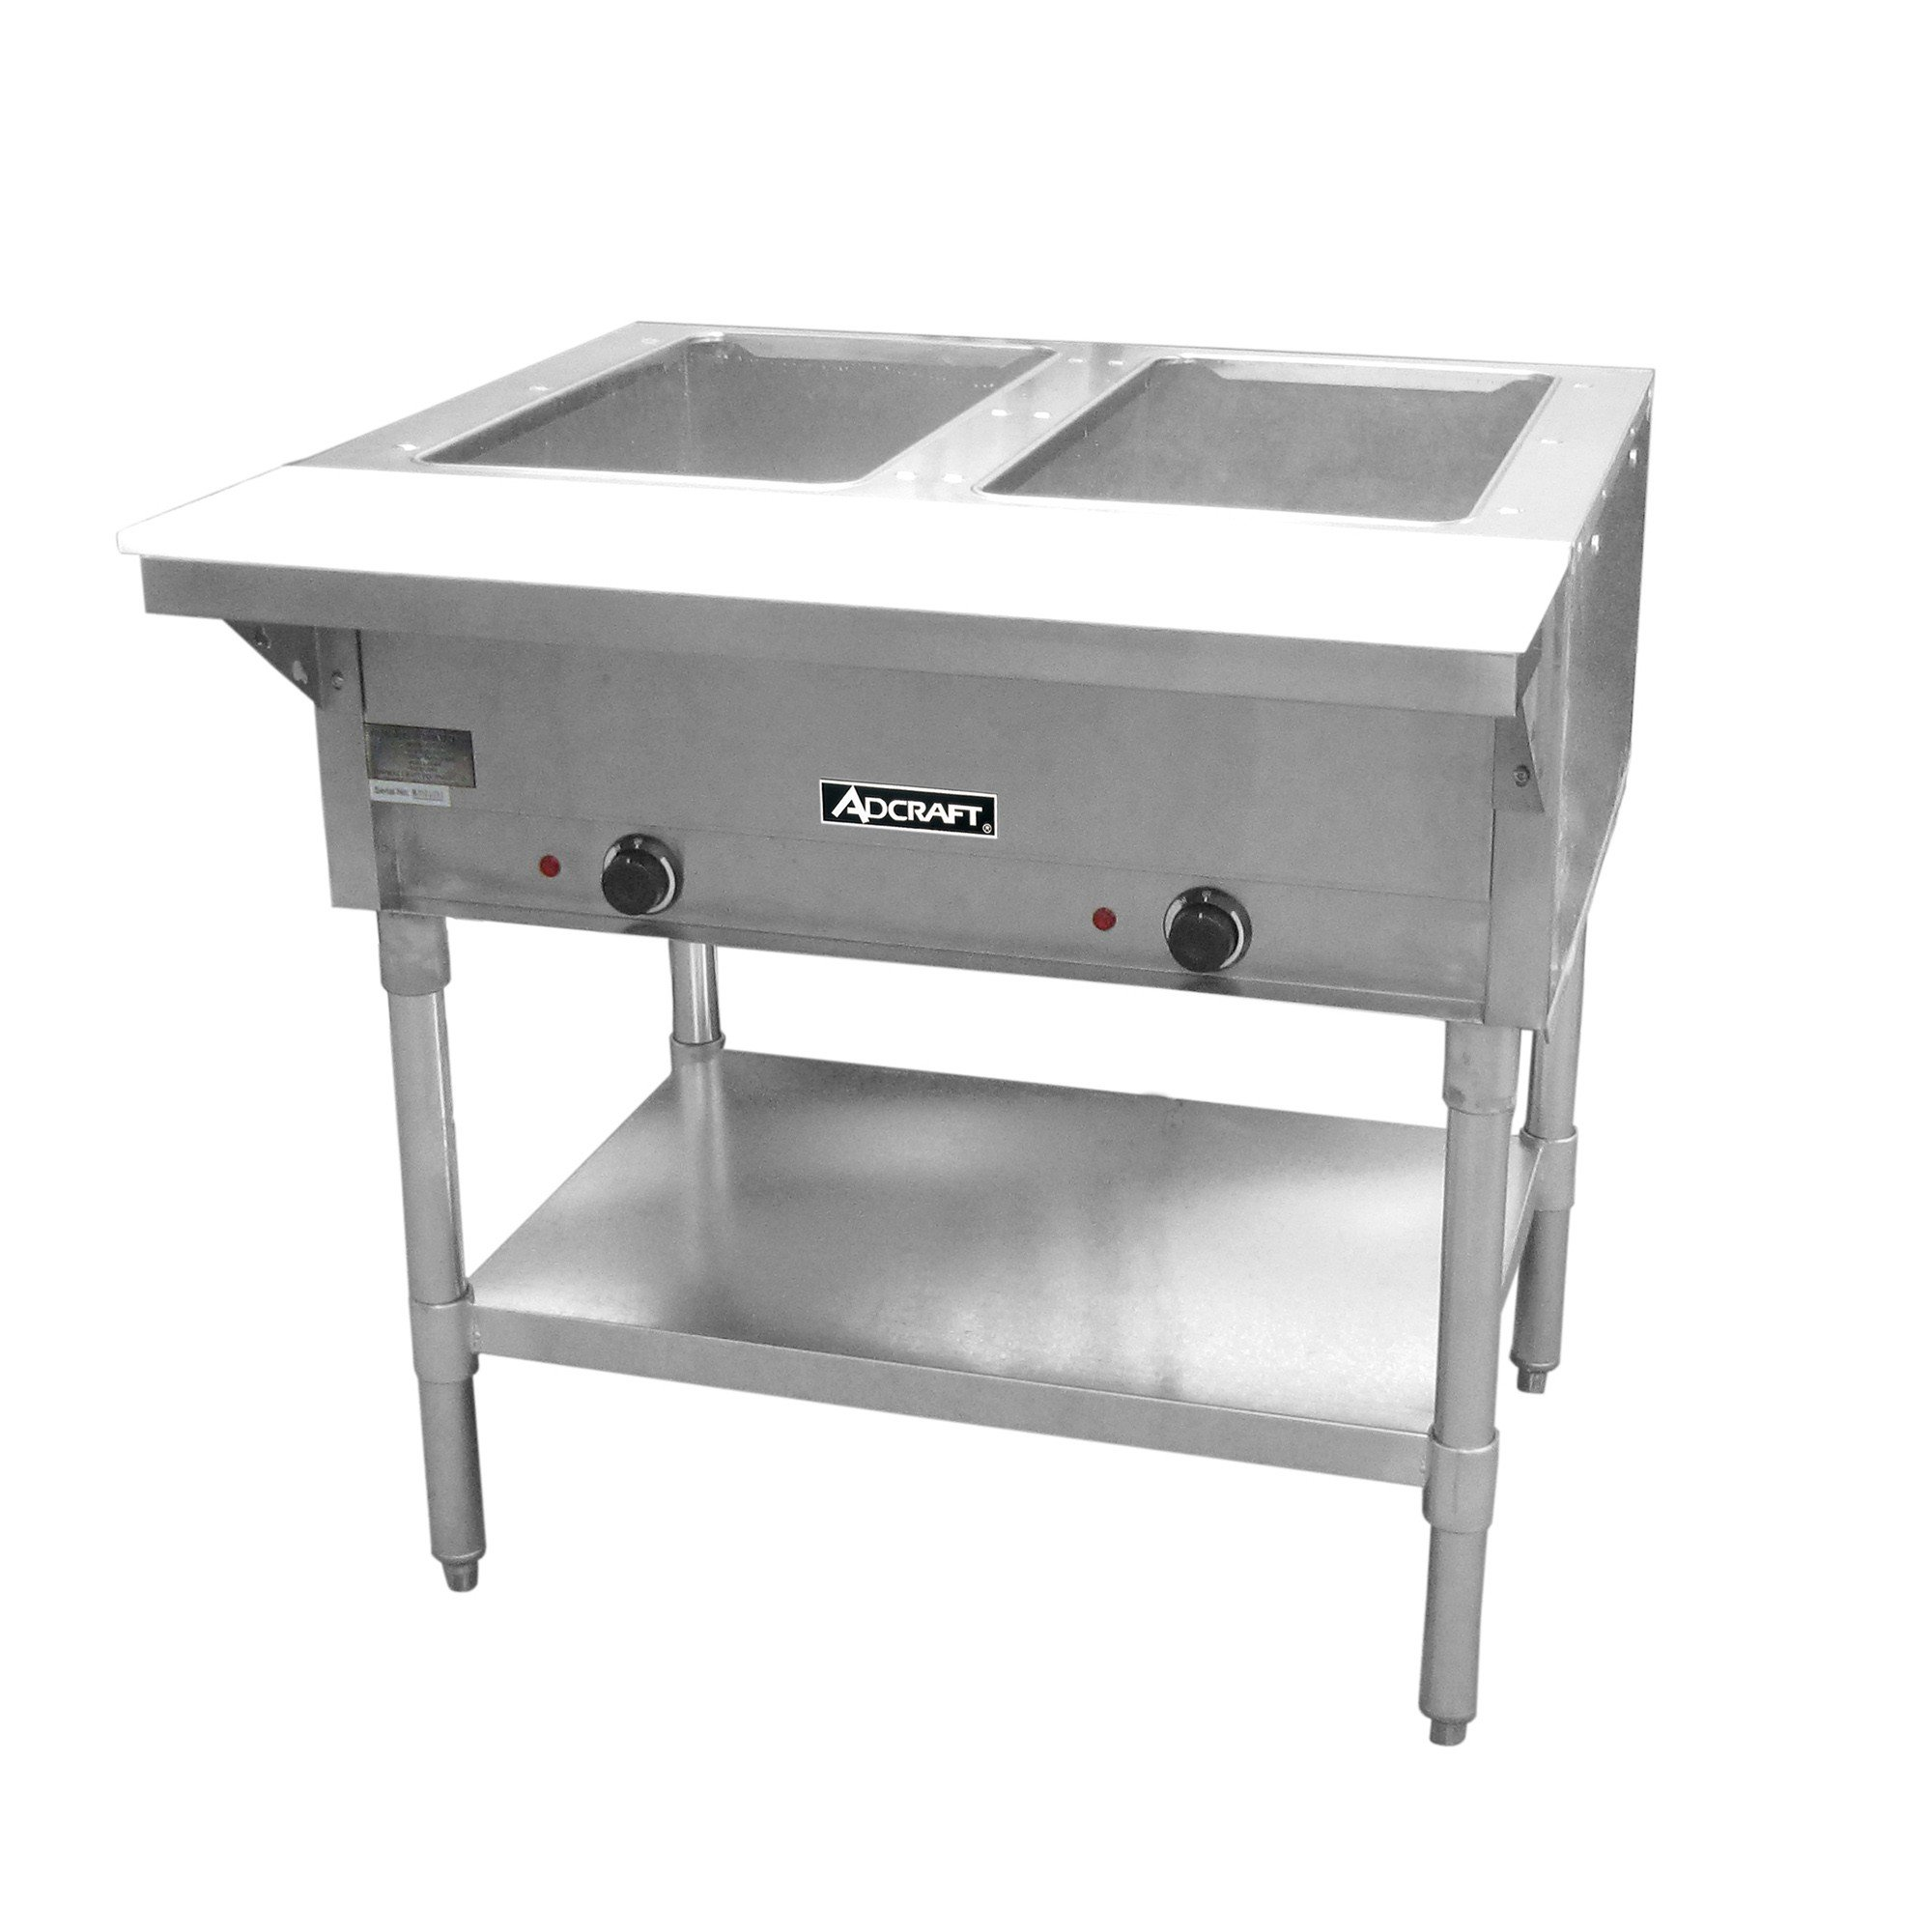 Adcraft 2 Bay Open Well Steam Table Model ST-120-2